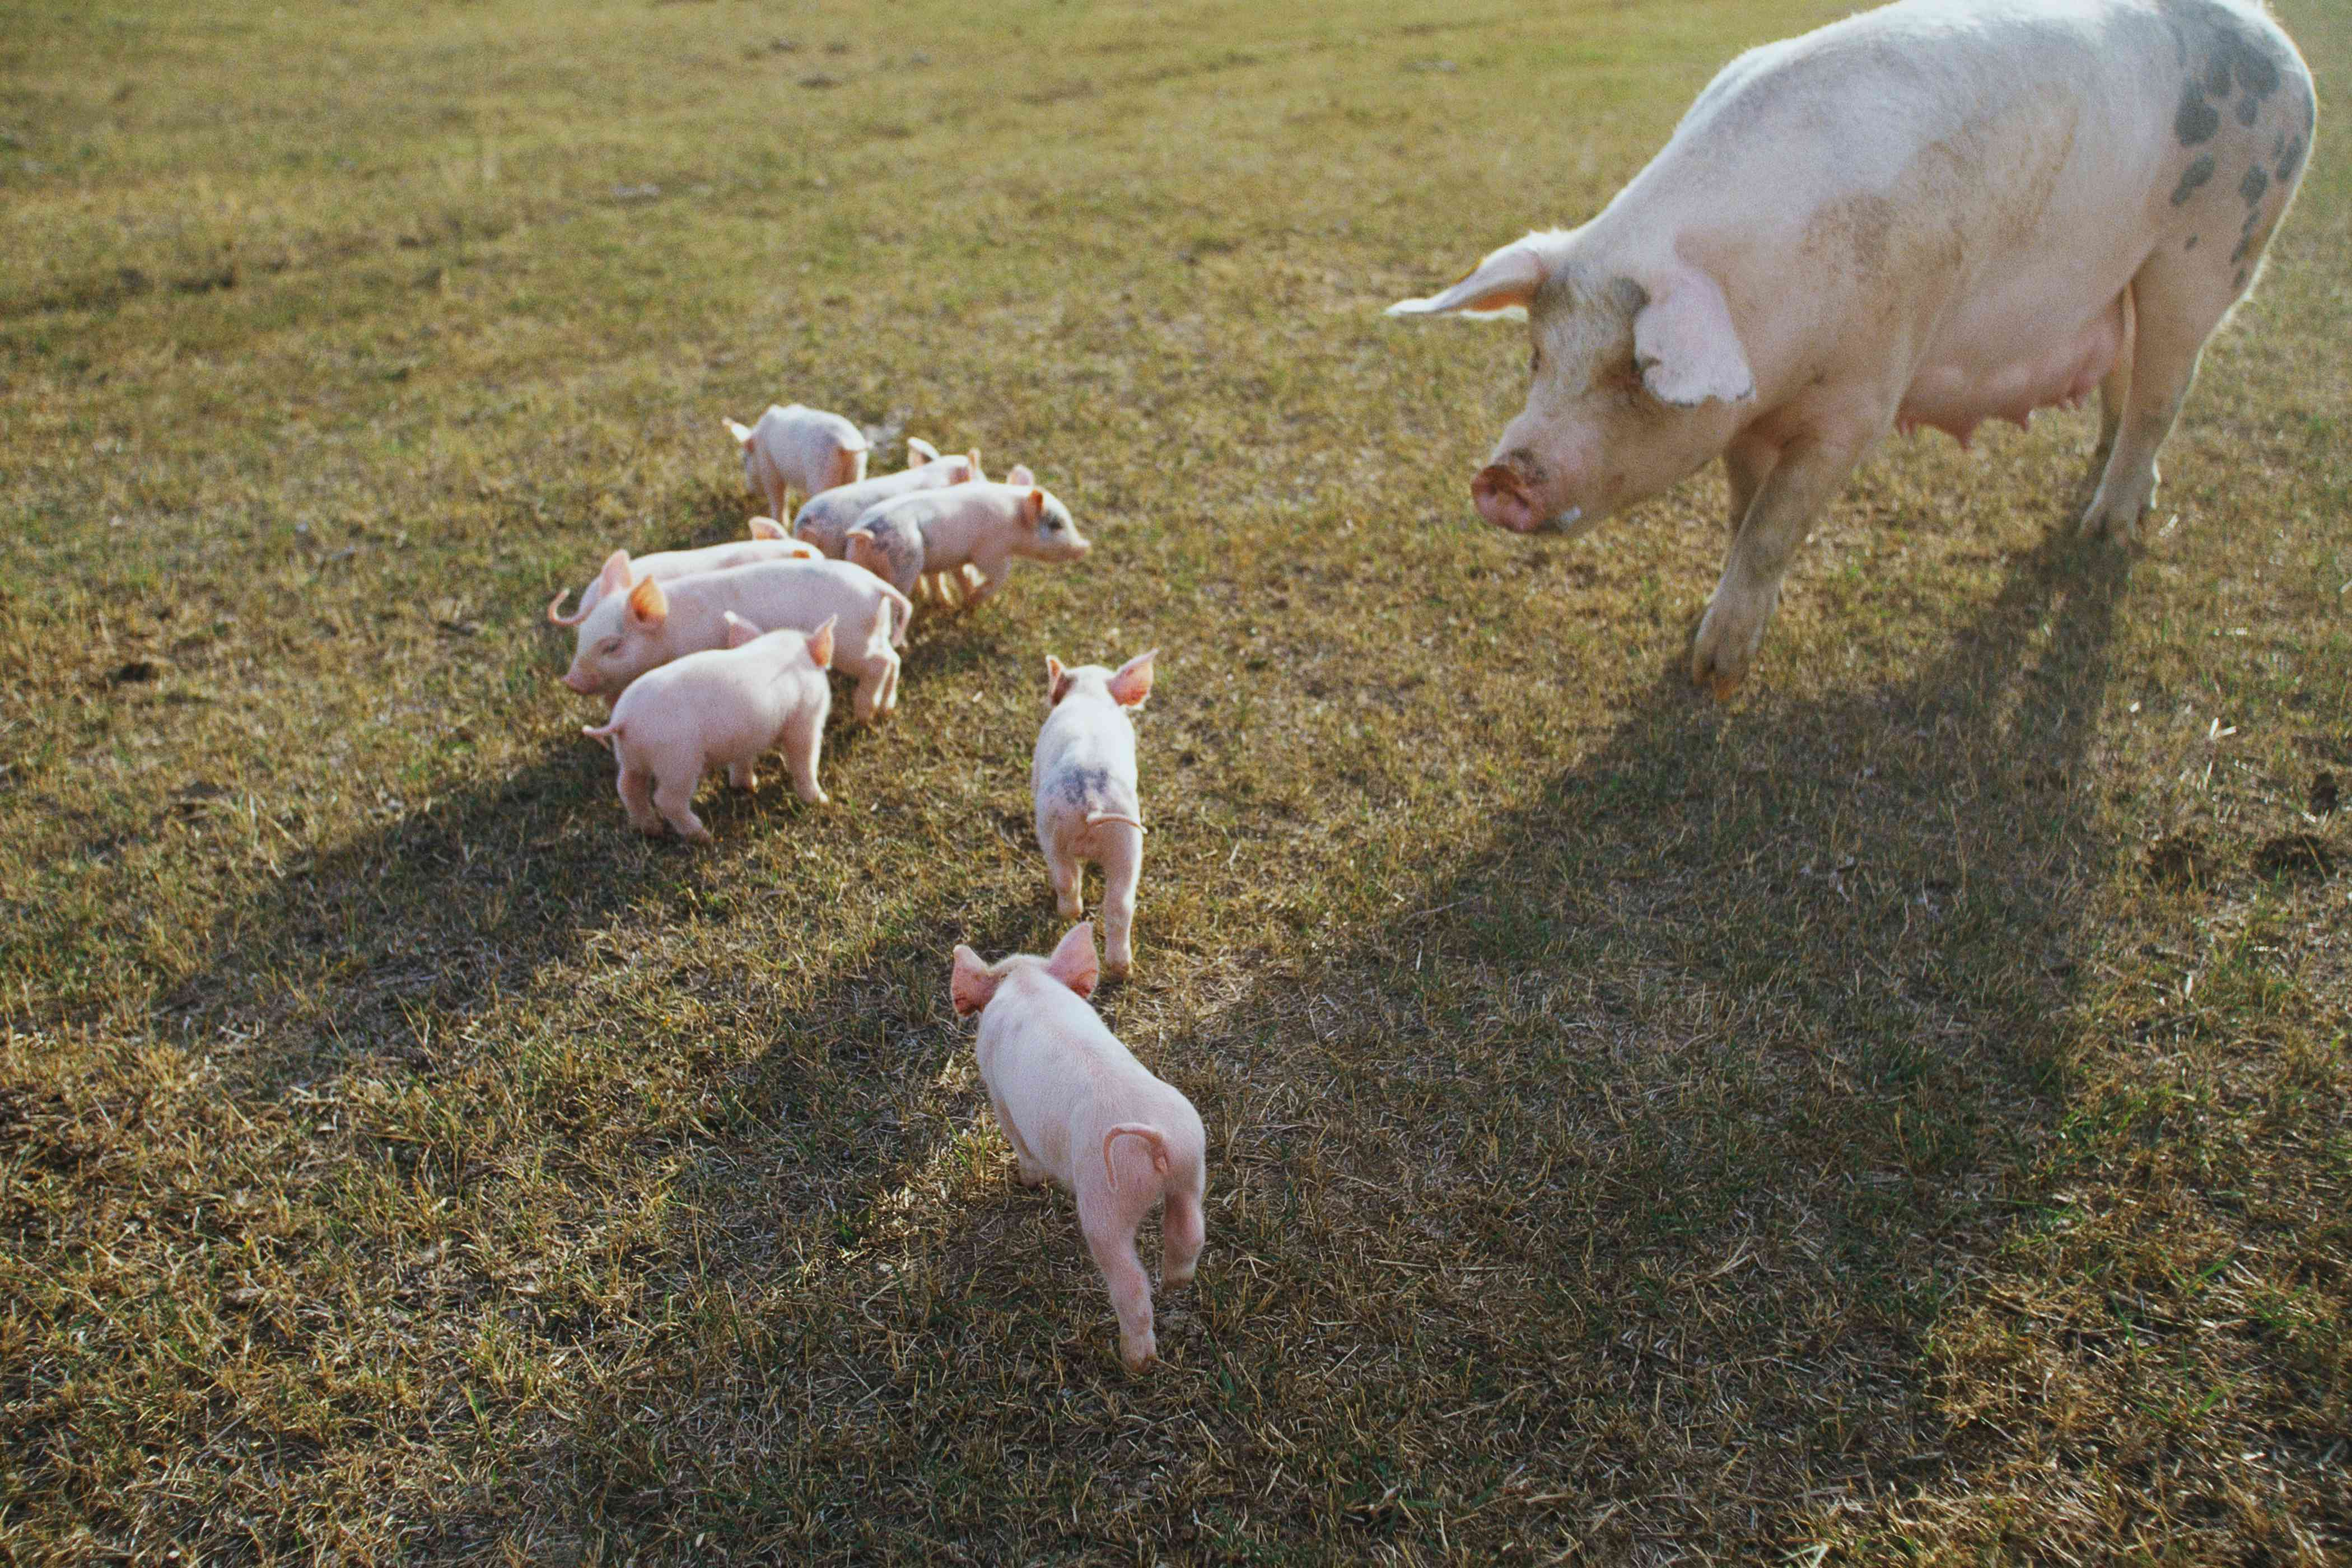 Sow watching piglets